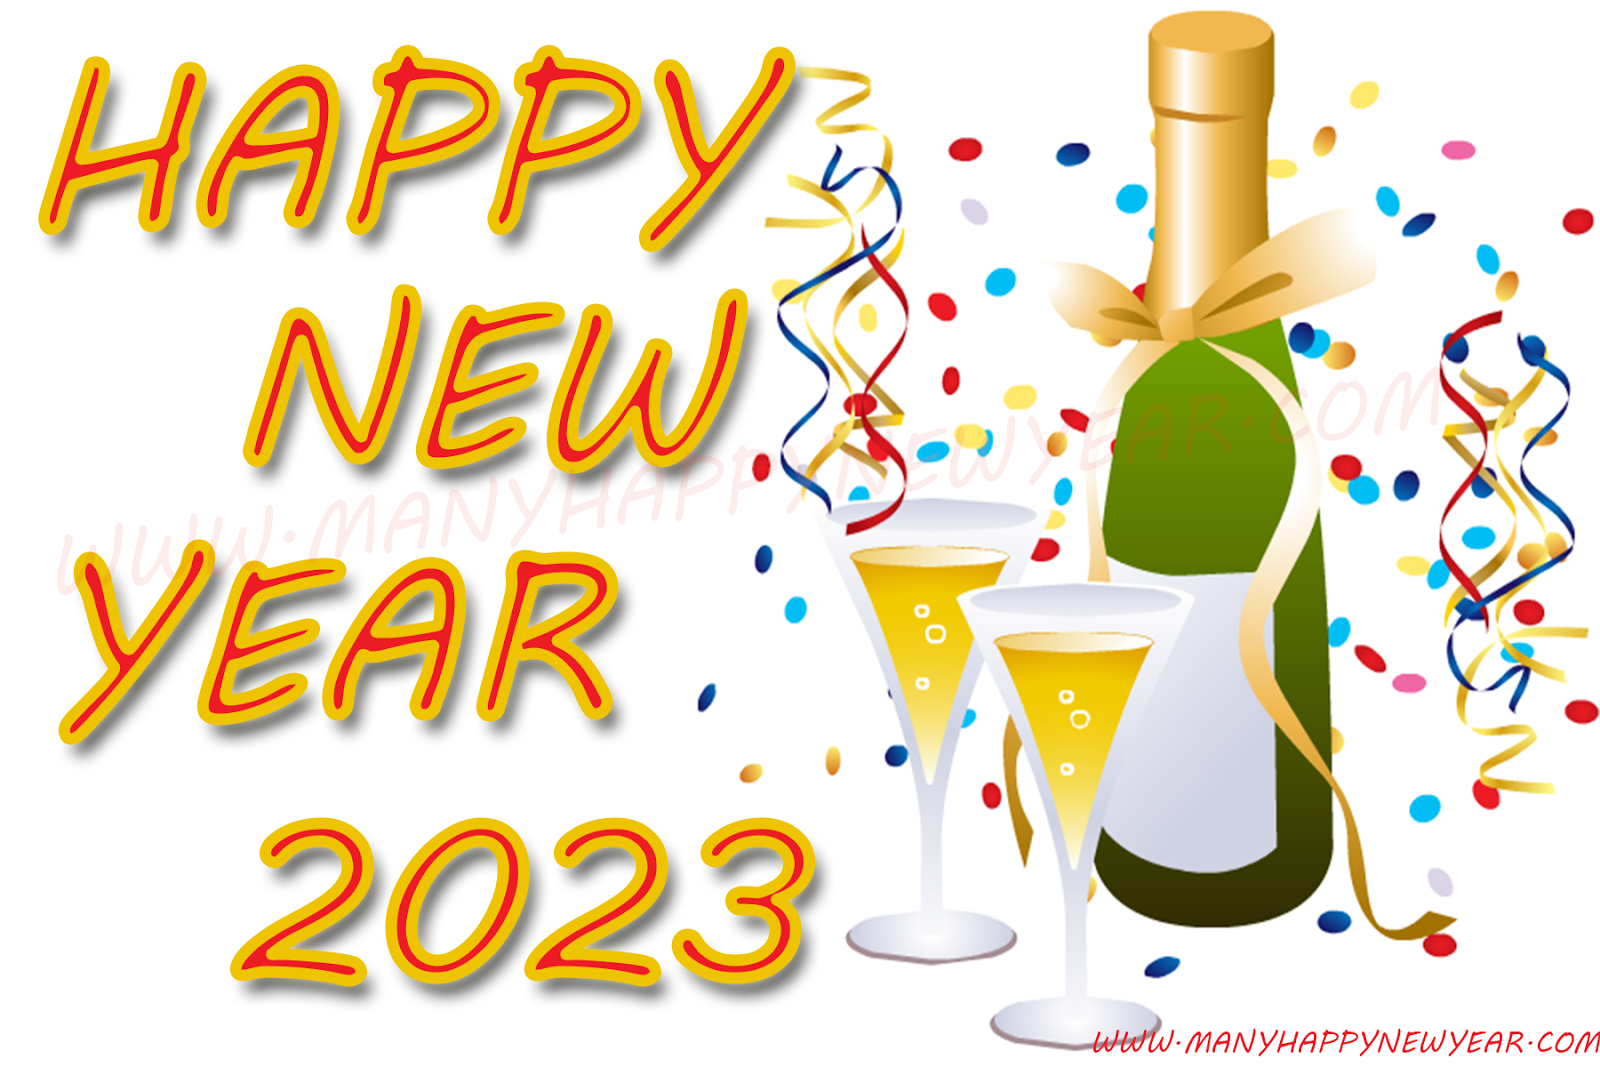 Happy New Year images 2023 inspiring whatsapp and facebook status ...